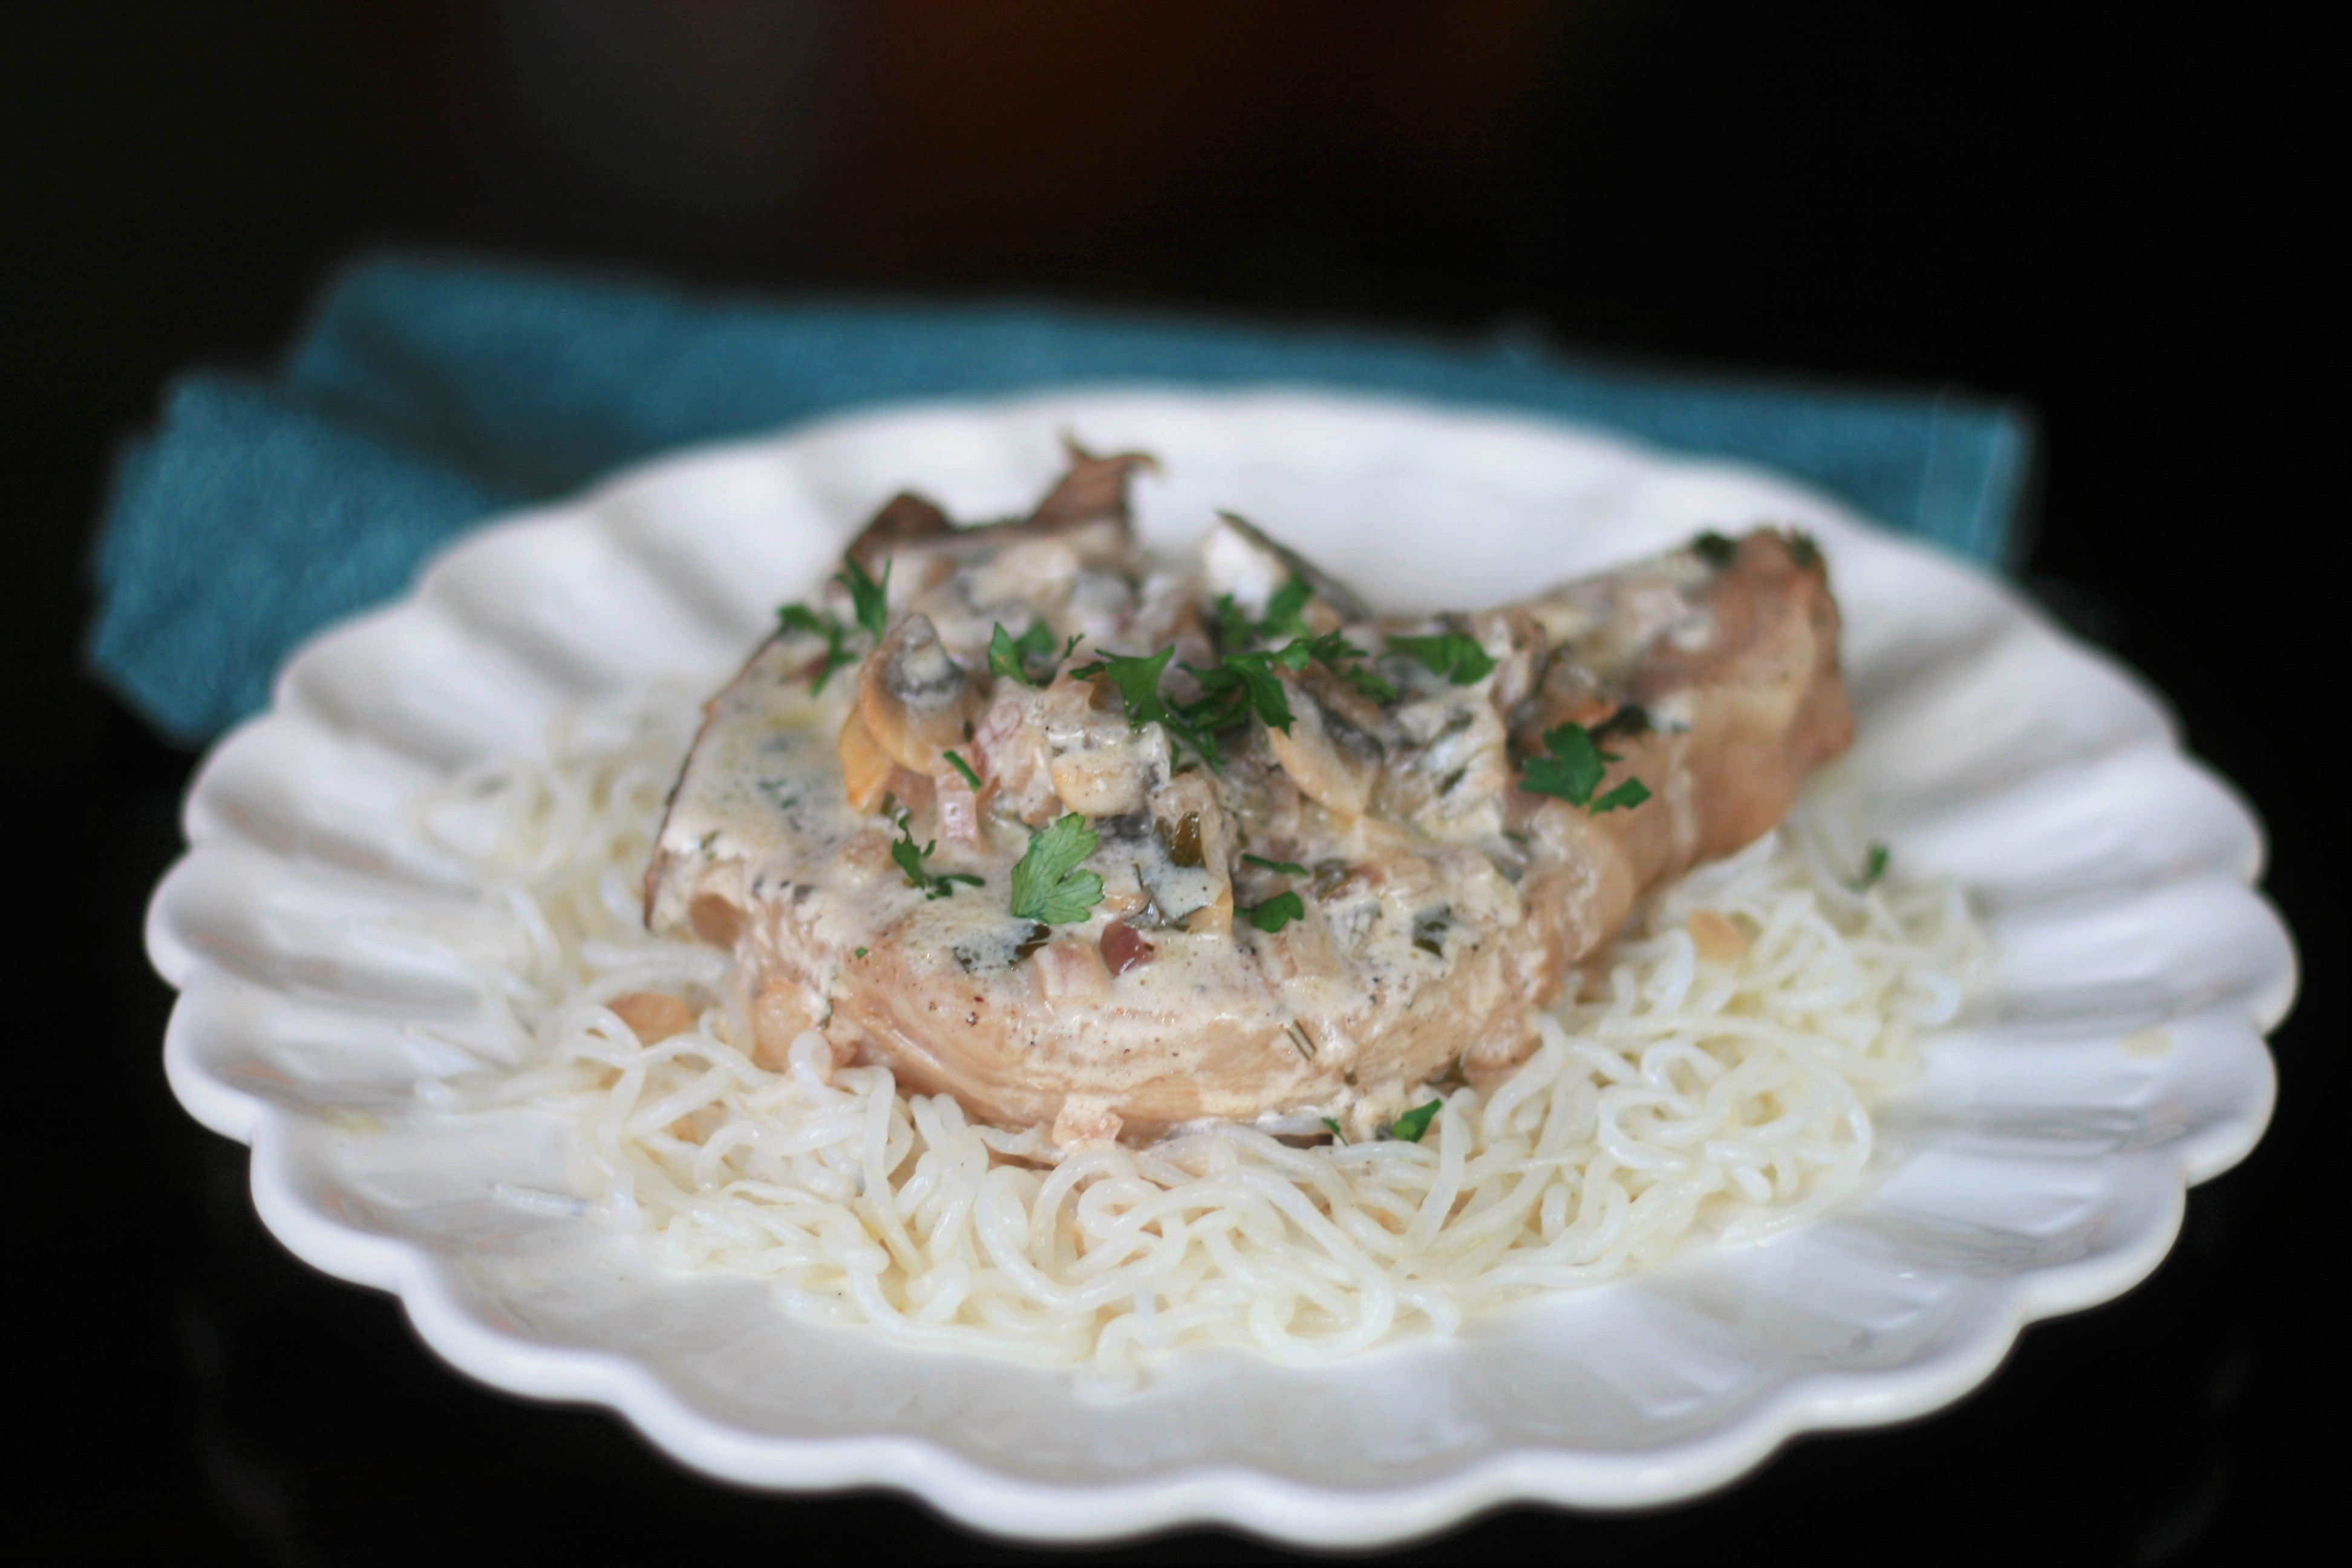 Wined and Dined Mushroom Pork Chops